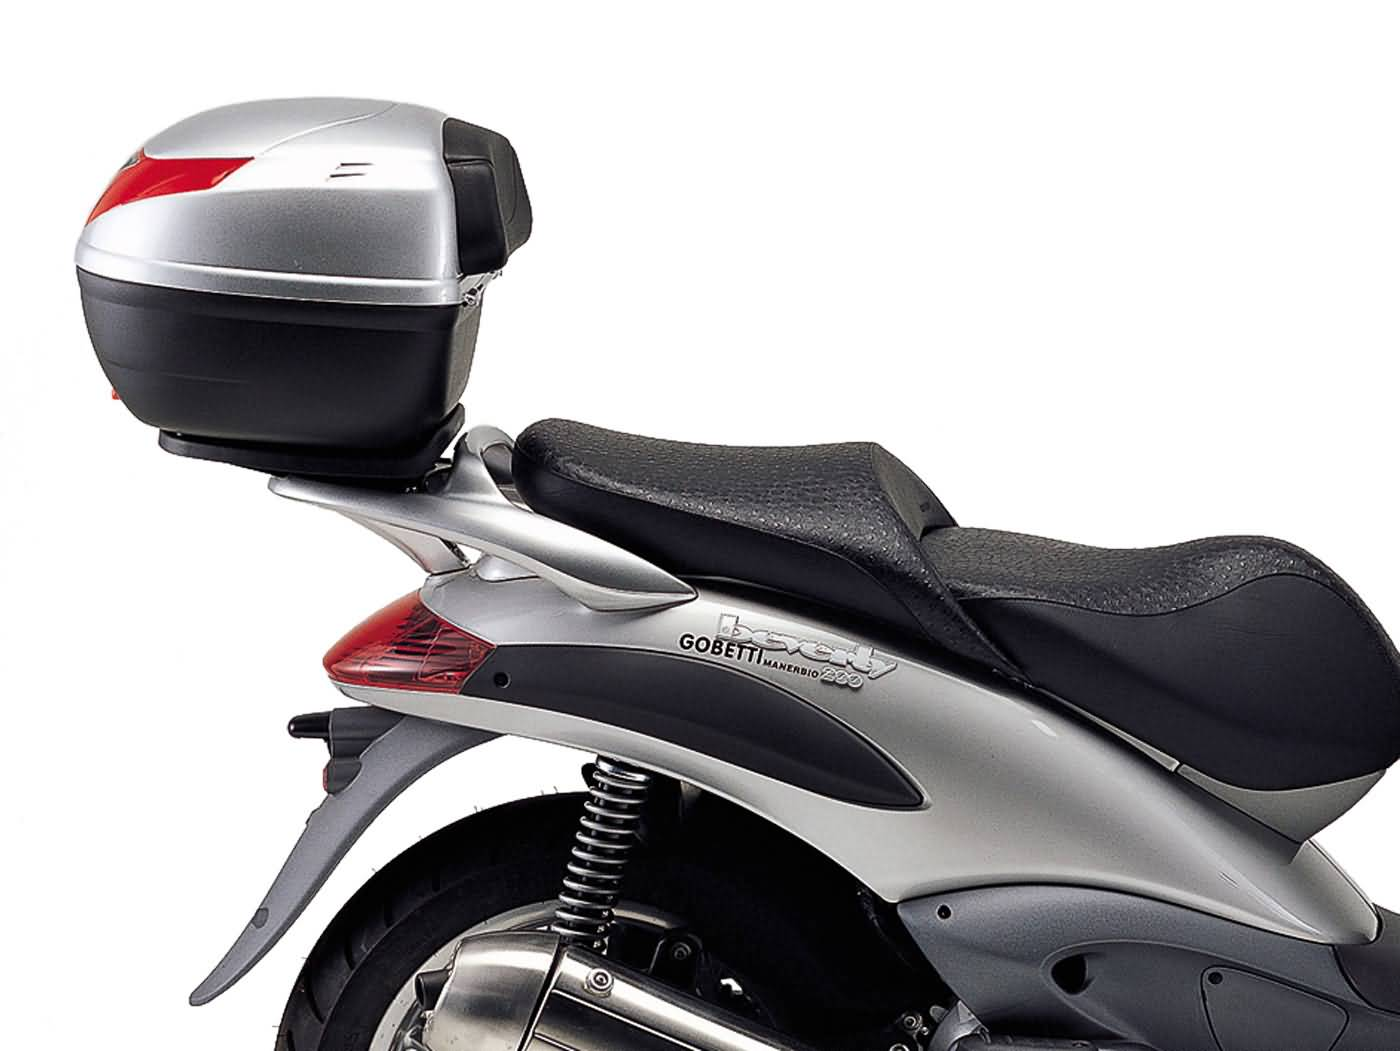 top case givi monolock scooter trunk mounting for piaggio beverly 125 250 500 01 04 scooter. Black Bedroom Furniture Sets. Home Design Ideas